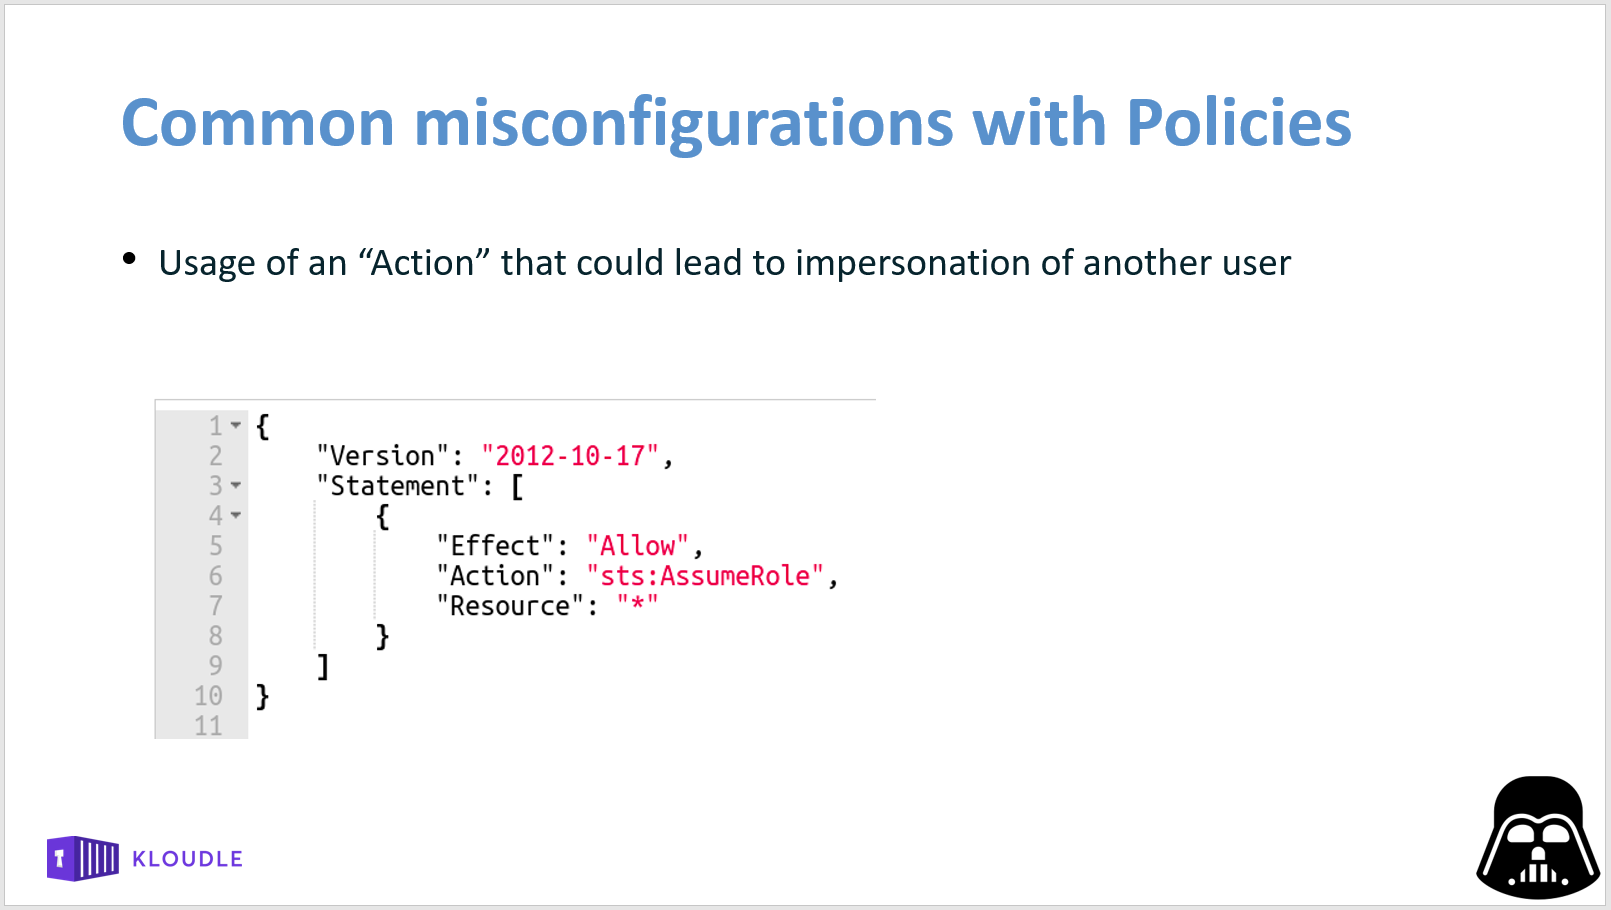 Misconfiguration via an action that could lead to user impersonation